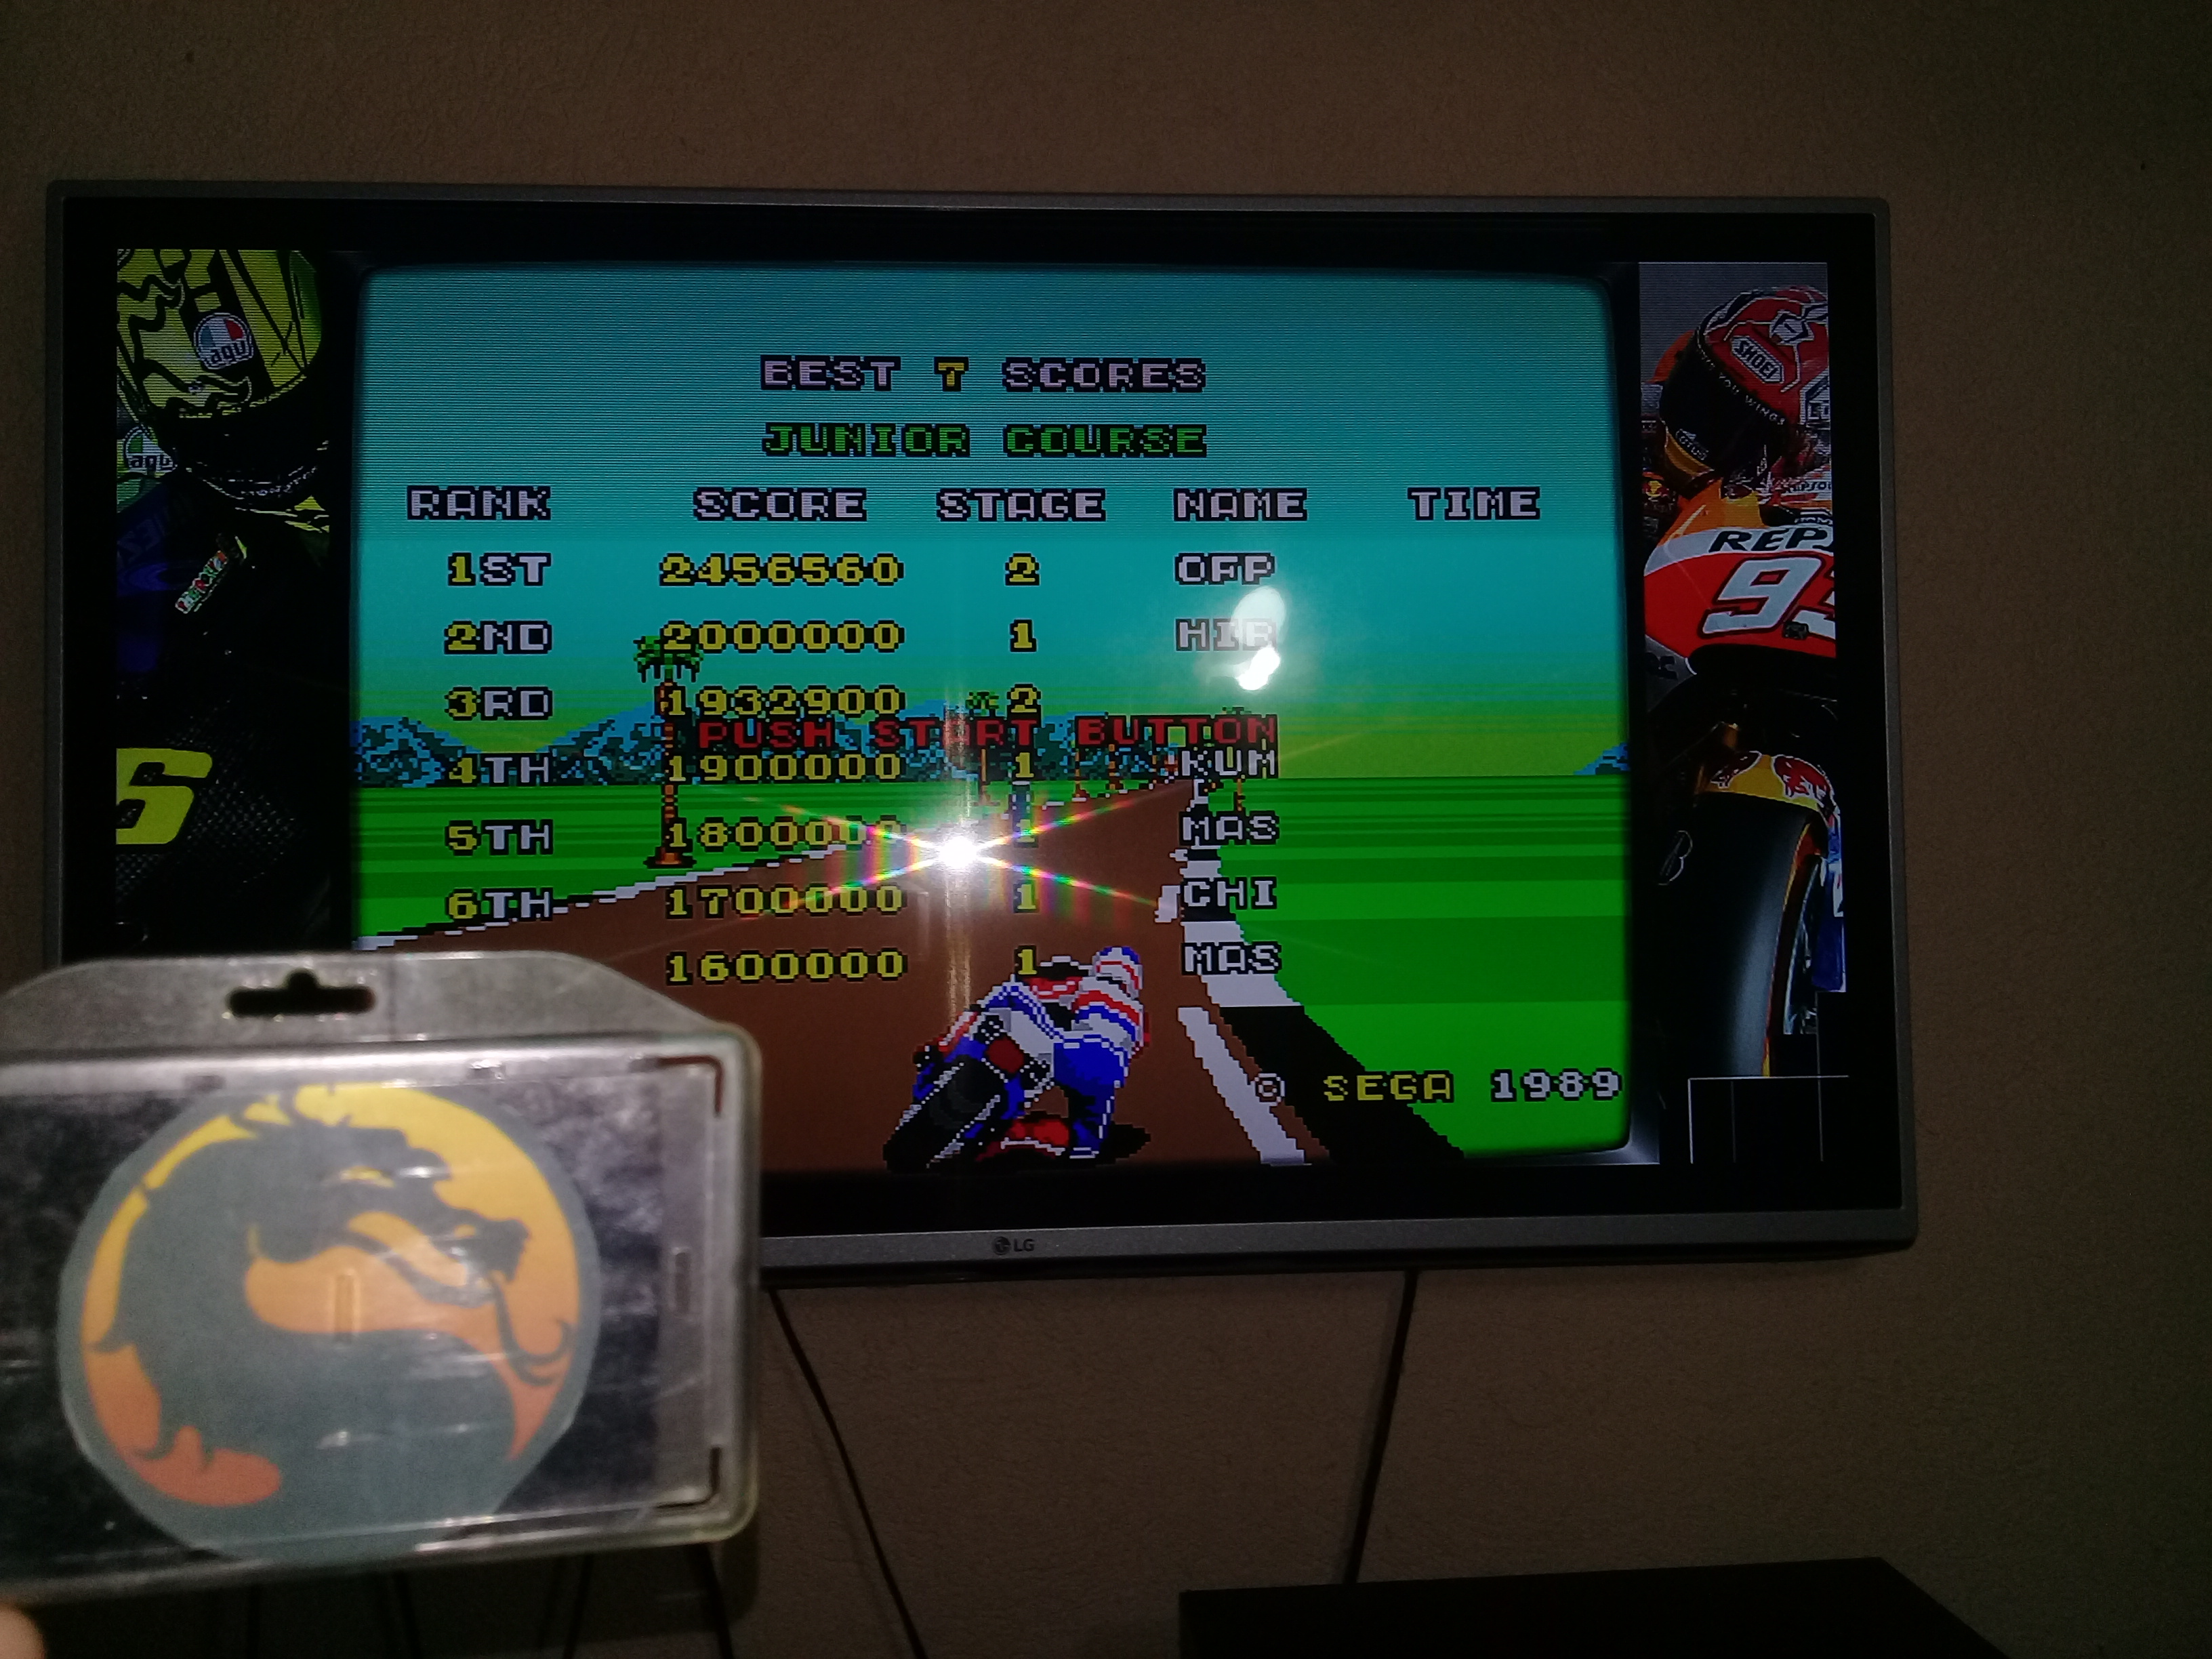 omargeddon: Super Hang-On [Junior Course] (Sega Genesis / MegaDrive Emulated) 2,456,560 points on 2020-07-03 22:56:37